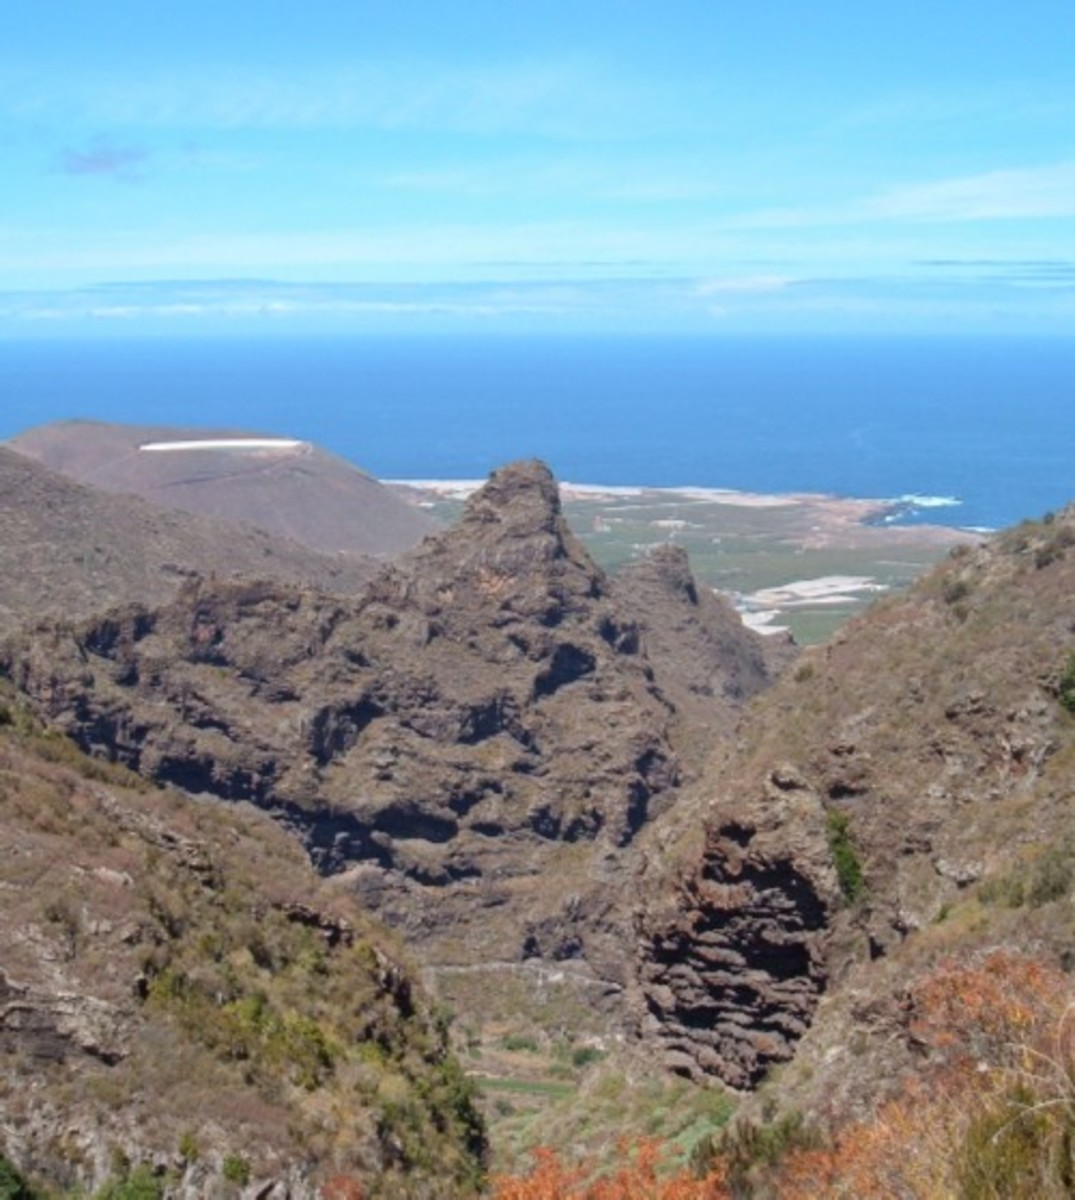 View down to Los Silos from Cuevas Negras. Photo by Steve Andrews